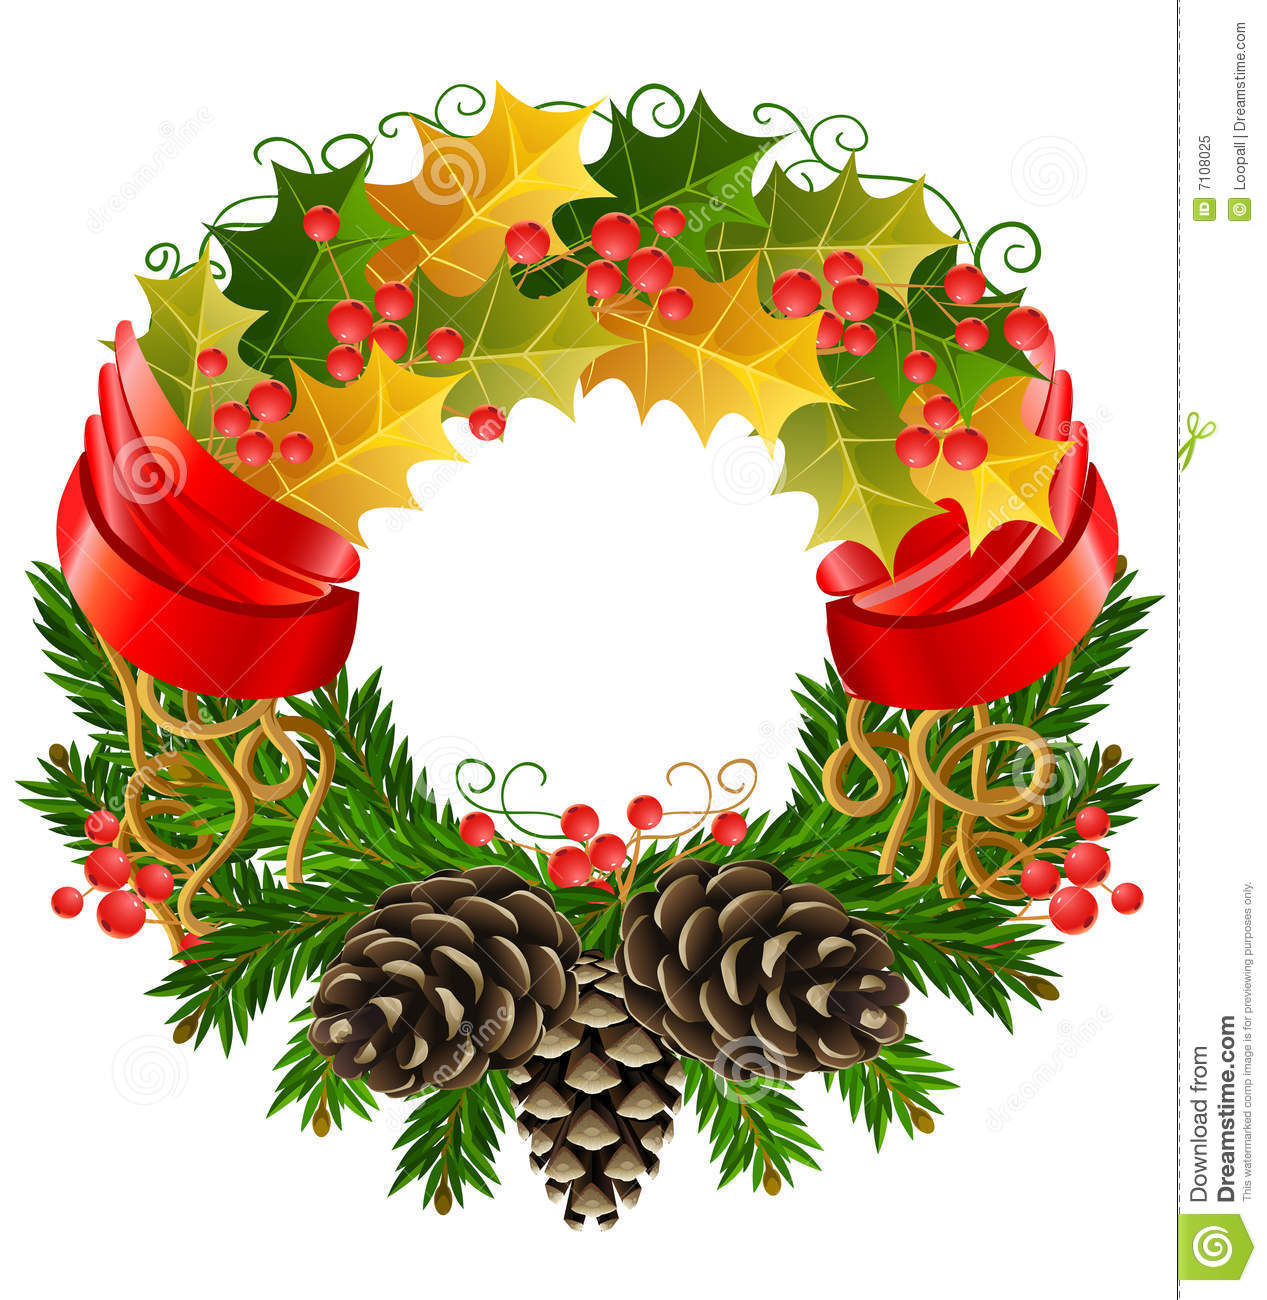 Vector Christmas Wreath Royalty Free Stock Photo - Image: 7108025